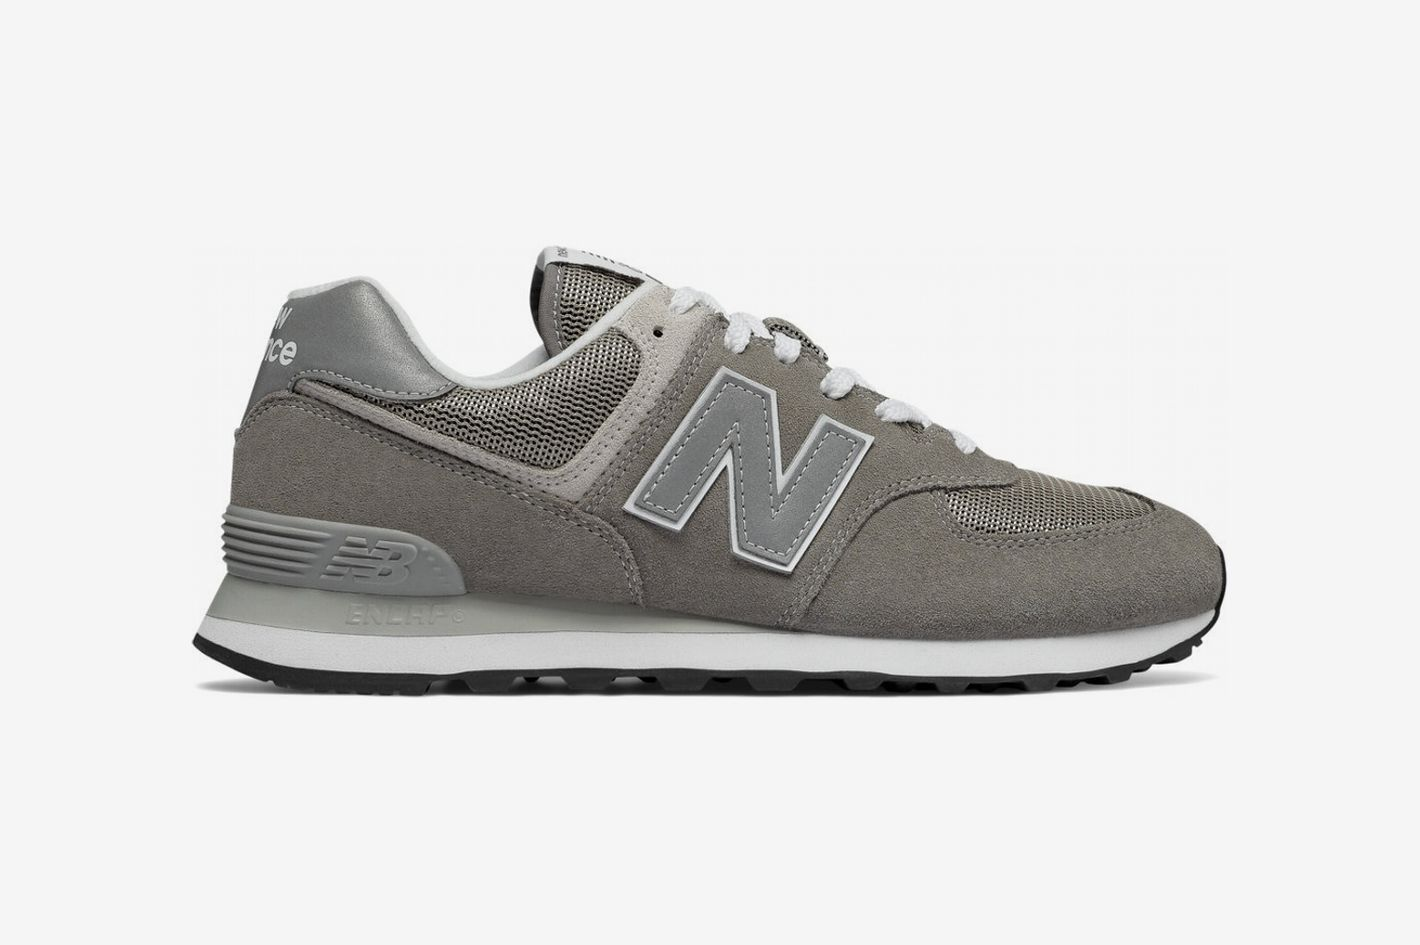 bc7b9f858d6343 The Best Monochrome Gray Sneakers. New Balance Men s 574